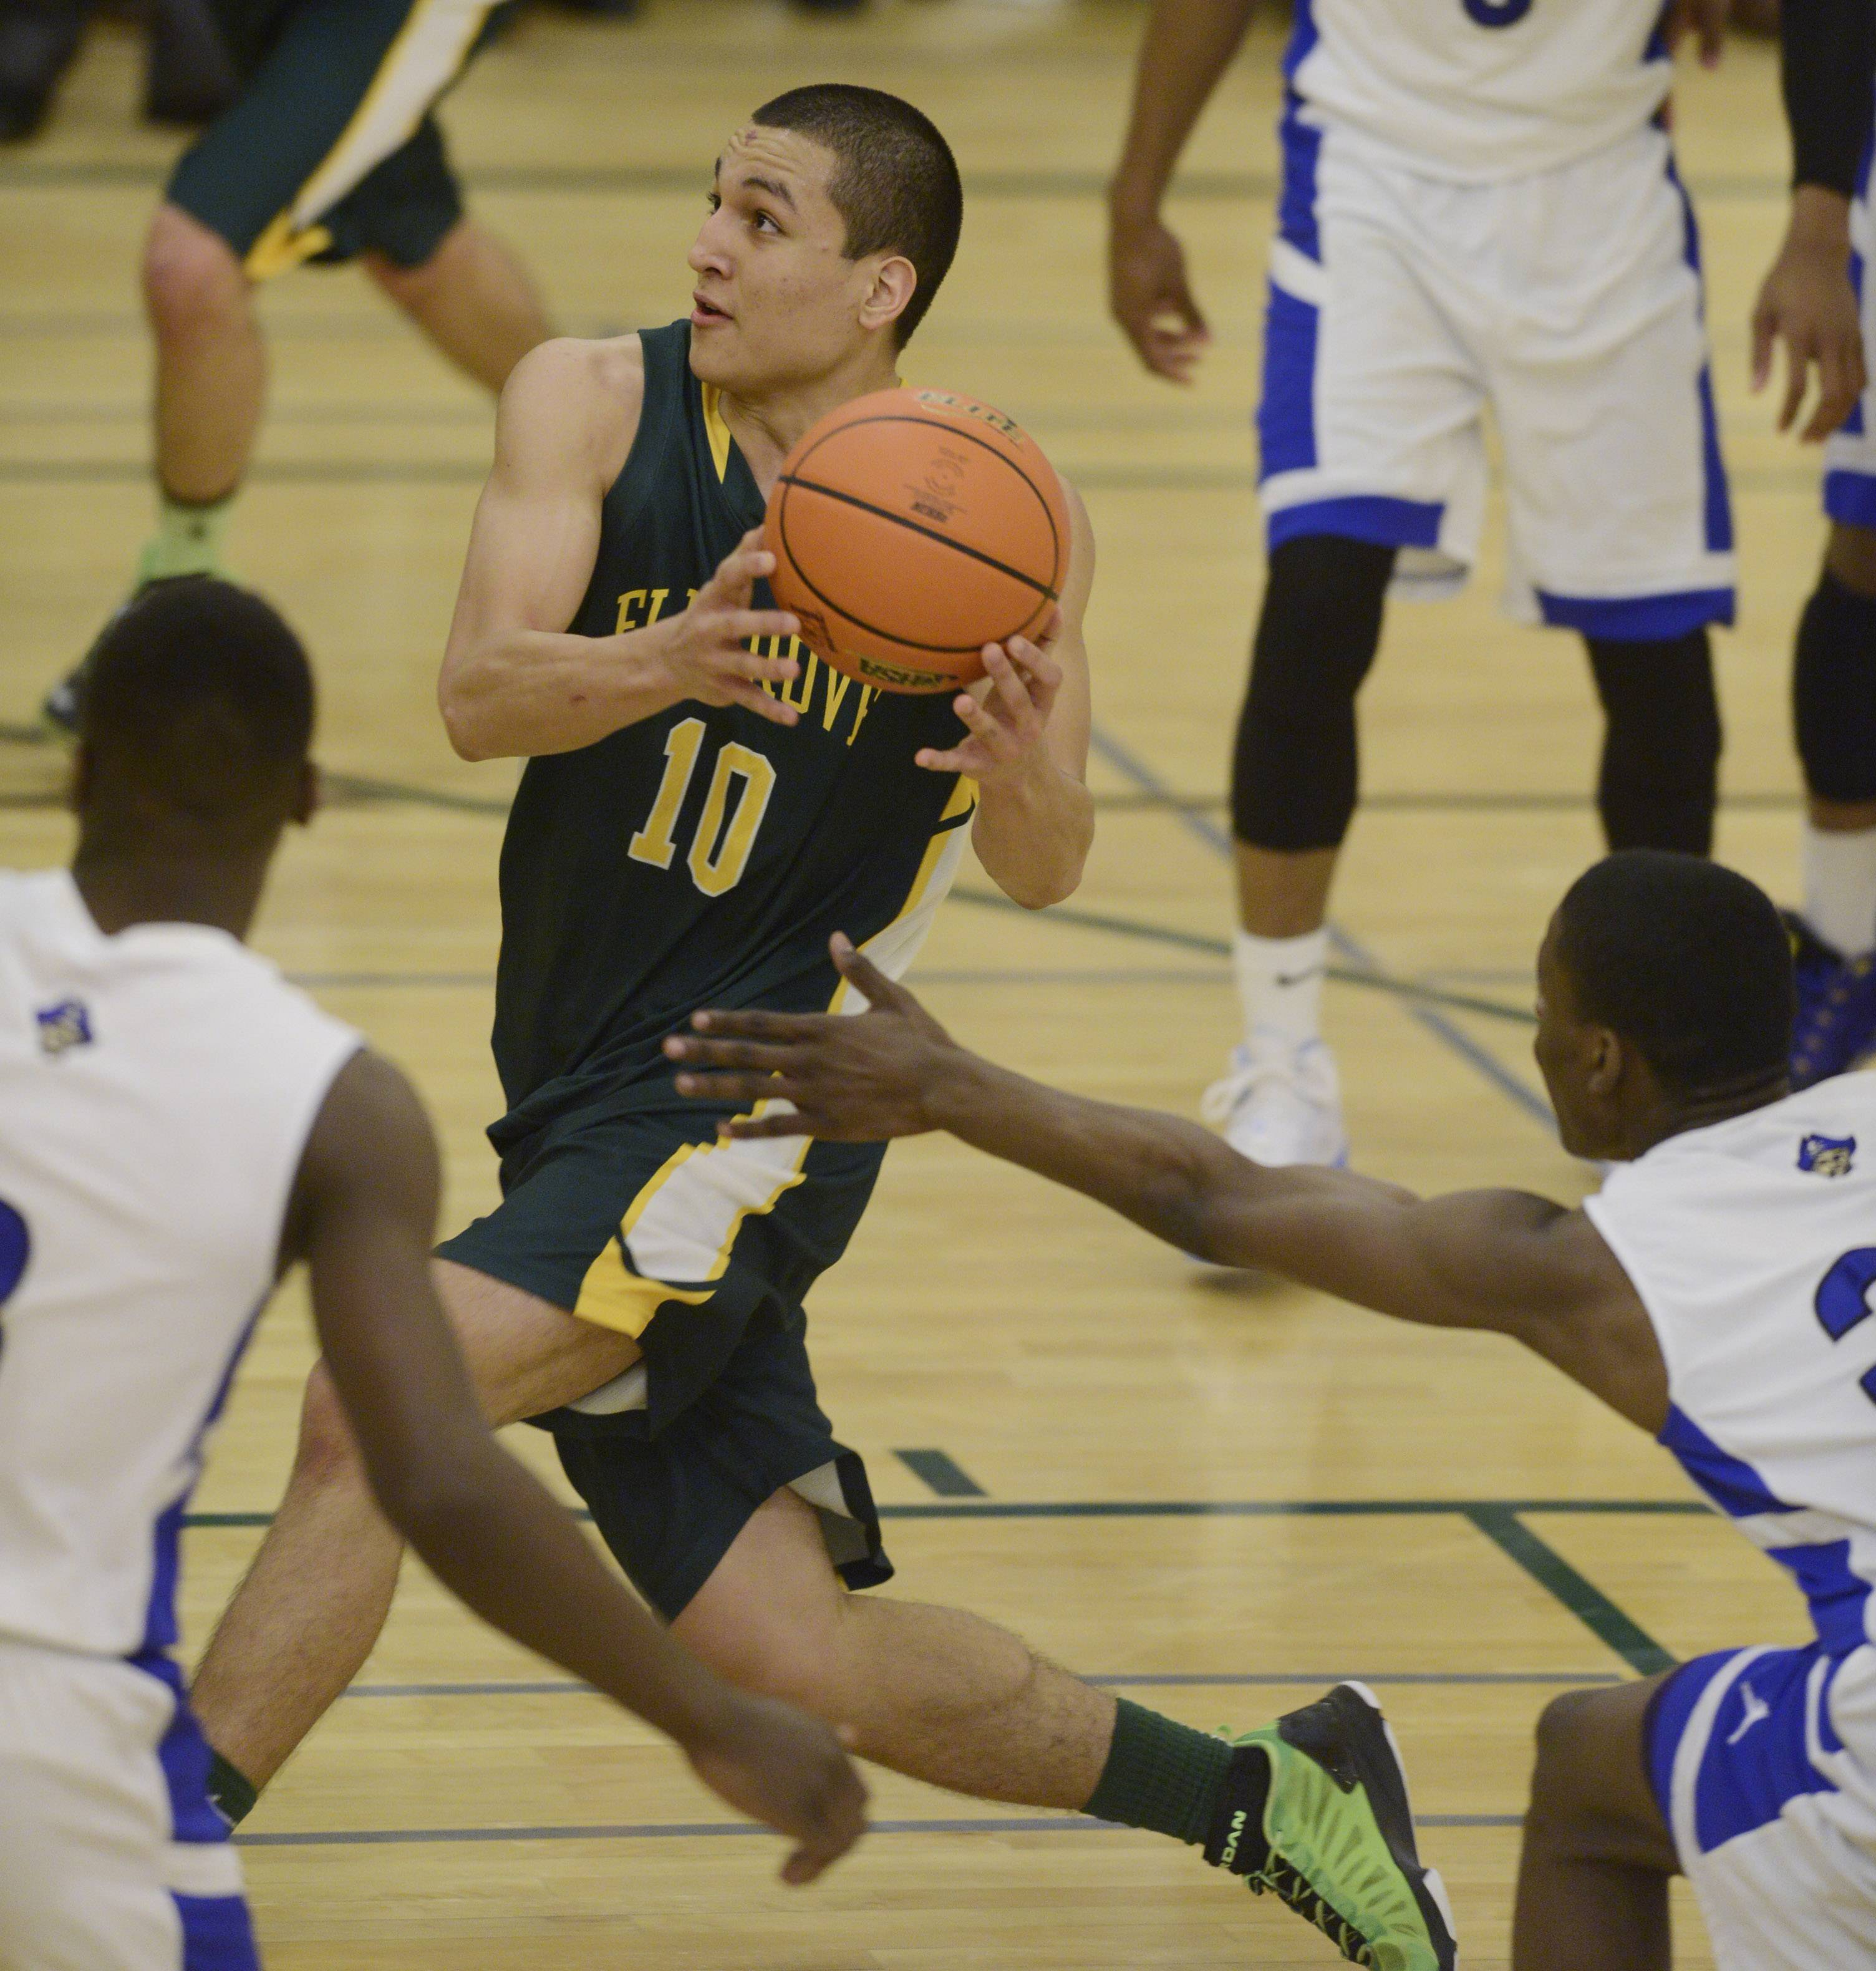 Elk Grove's Joell Melendez drives to the basket during Tuesday's regional semifinal against Proviso East at Elk Grove.